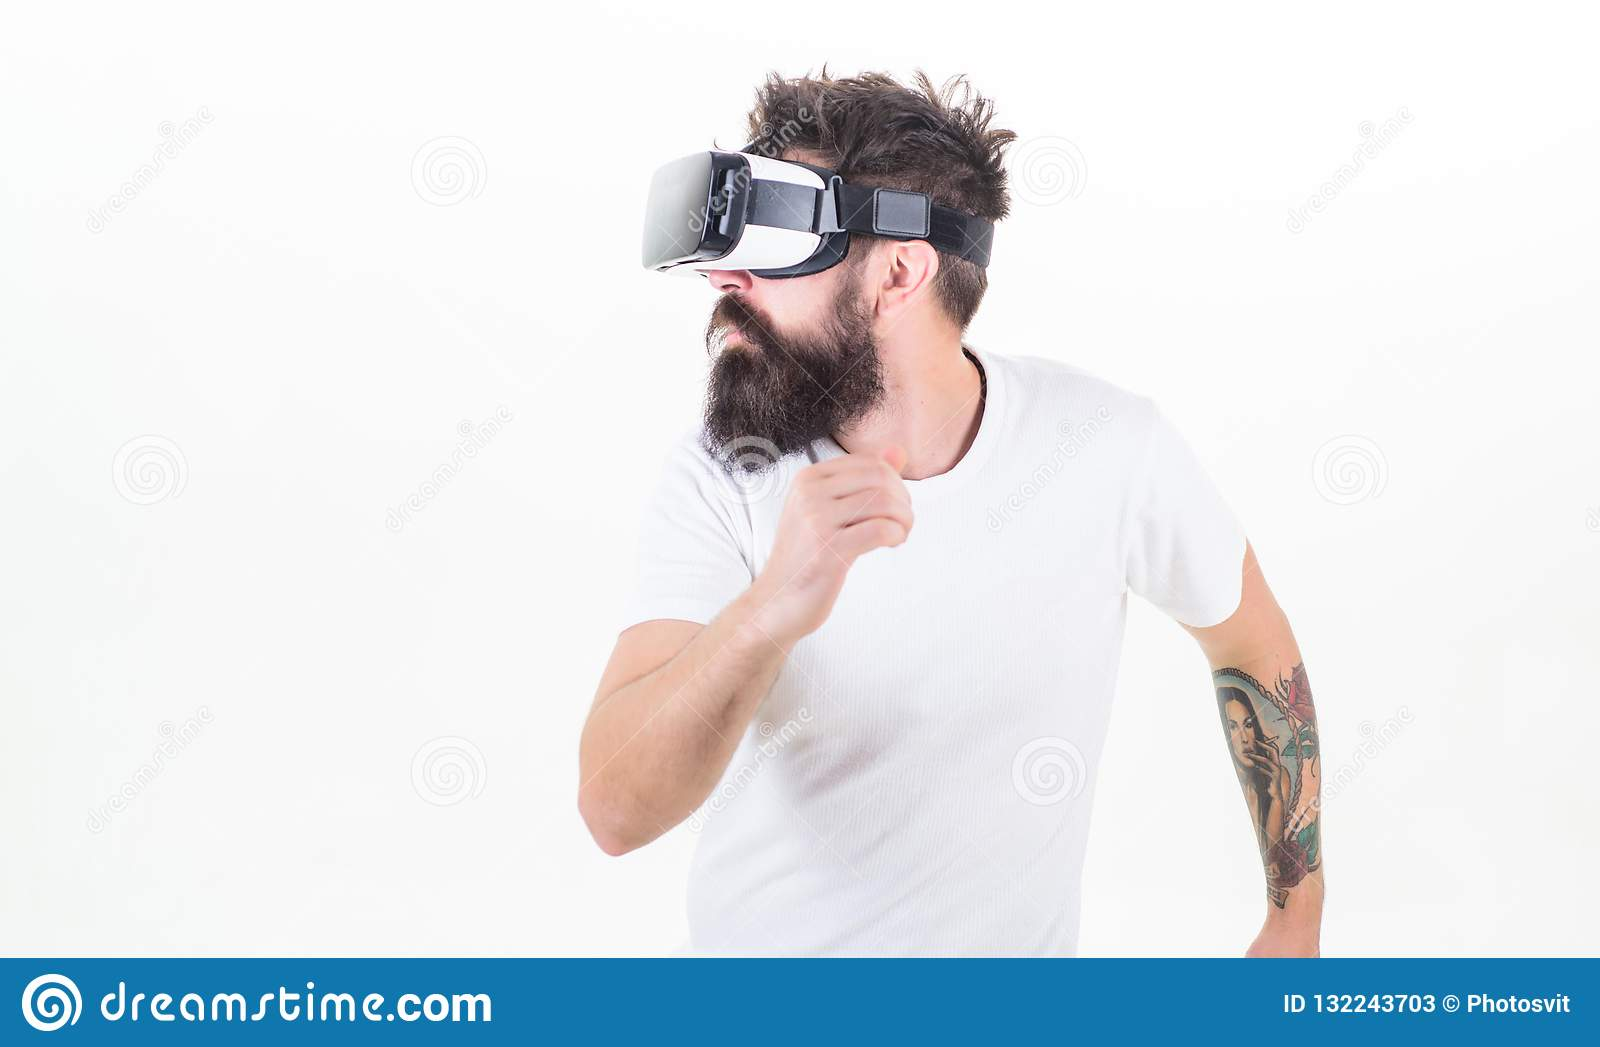 Cyber sport. Guy with head mounted display interact virtual reality. Hipster play virtual sport game. Virtual race. Man